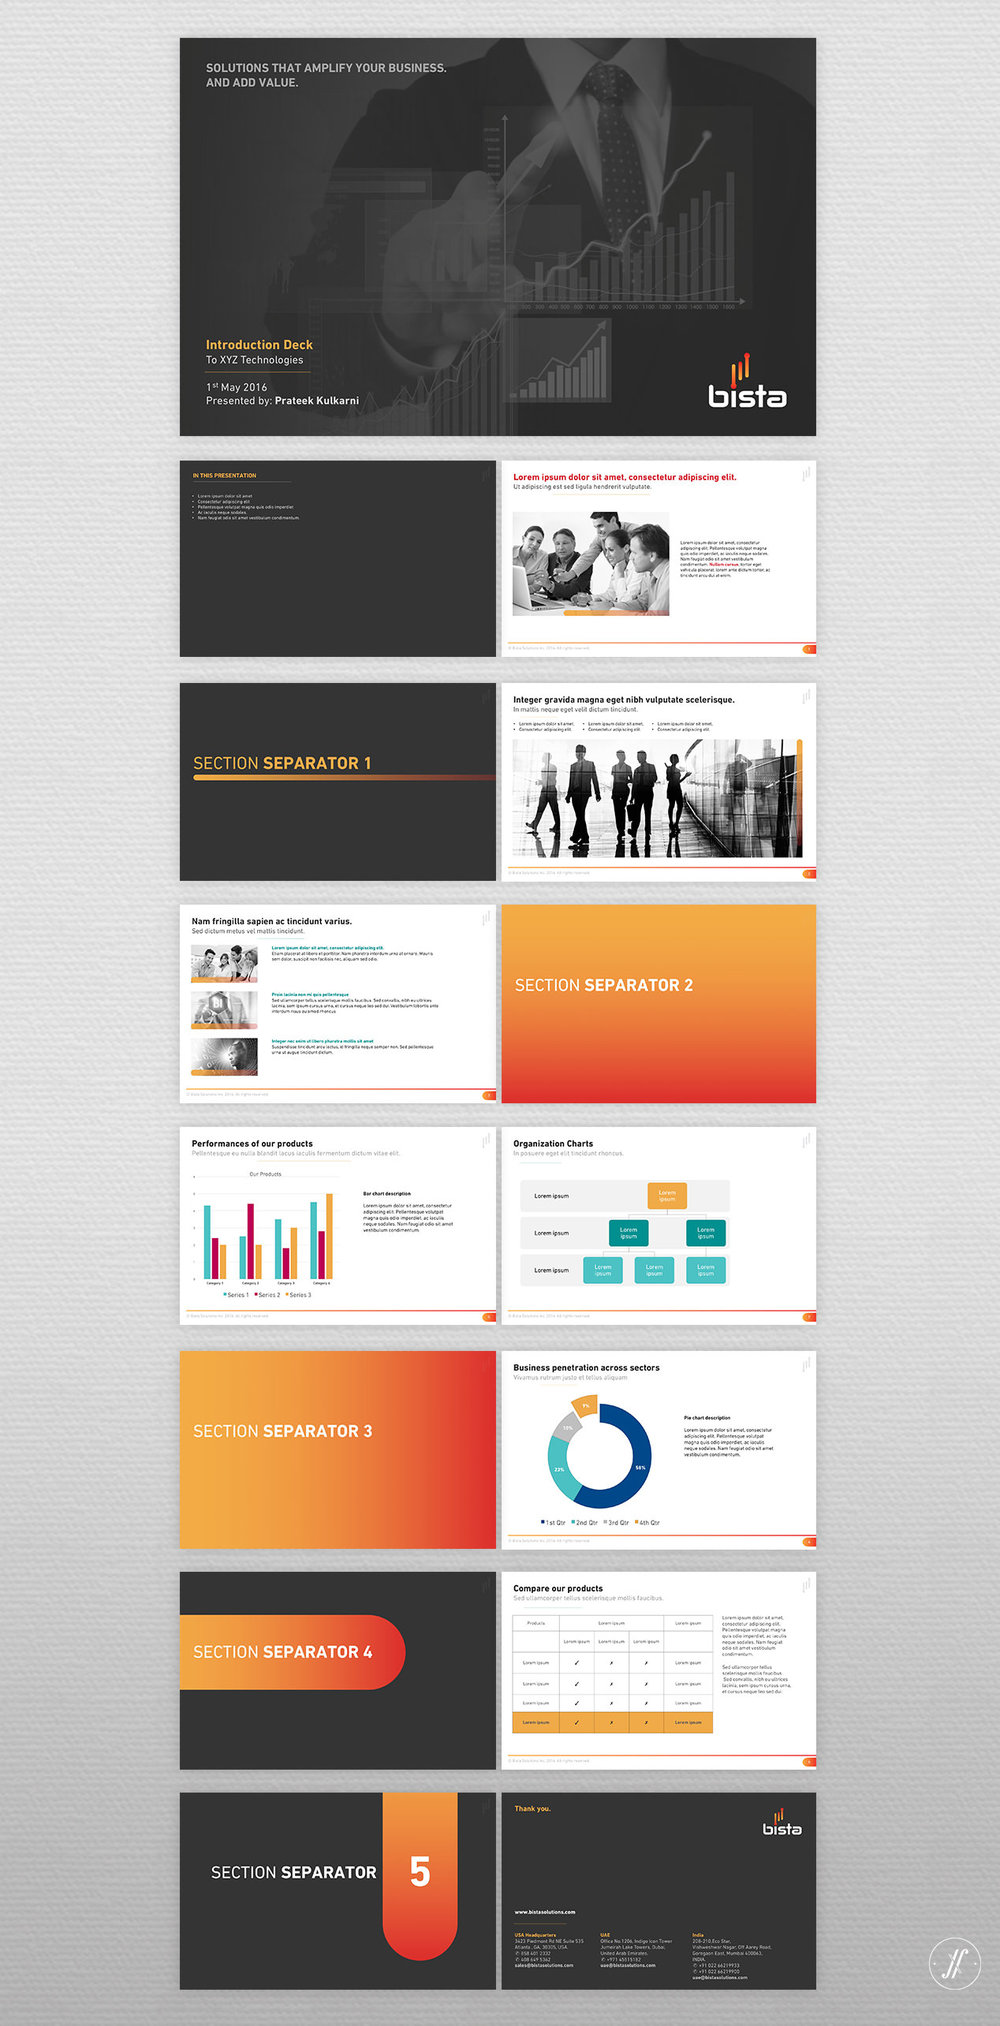 Yellow-Fishes-Mumbai-Branding-Agency-Corporat-Branding-Case-Study-Bista-Solutions-Presentation-Tempalte-Design